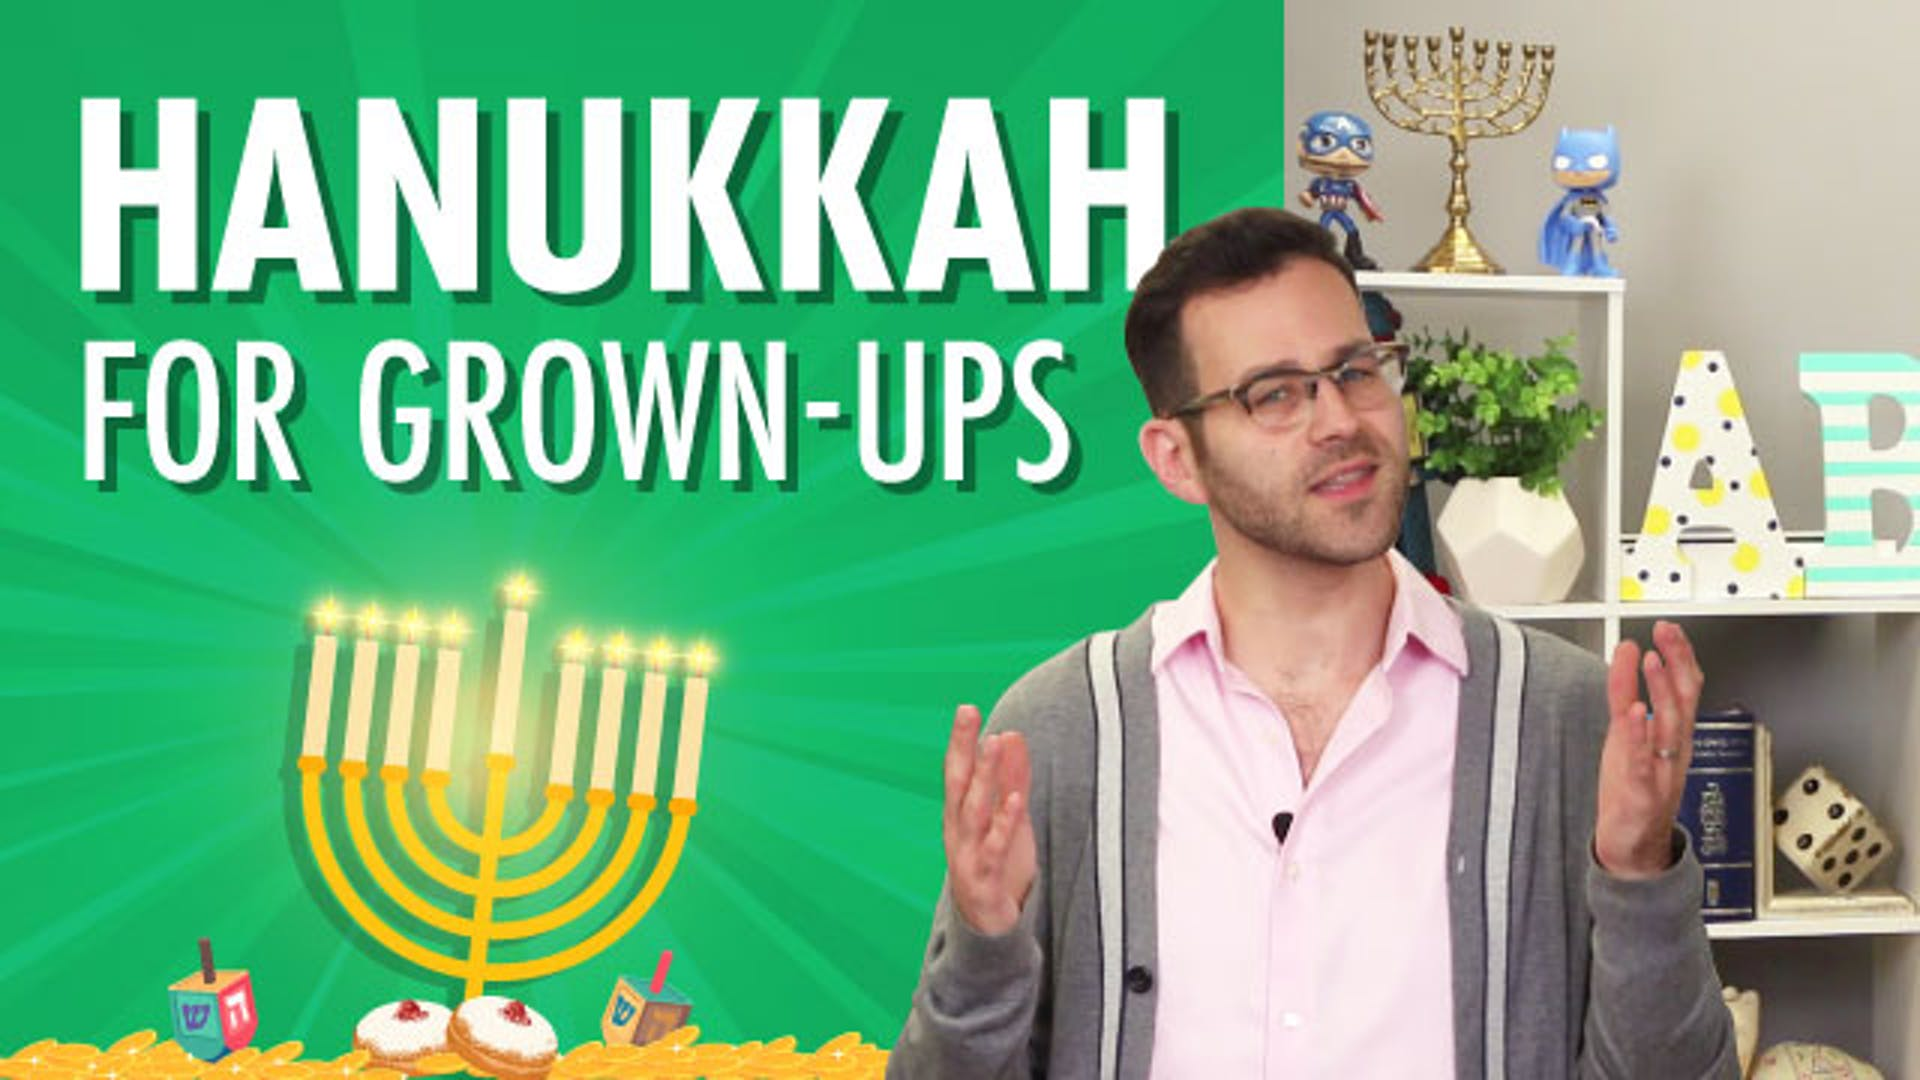 Hanukkah true real meaning significance